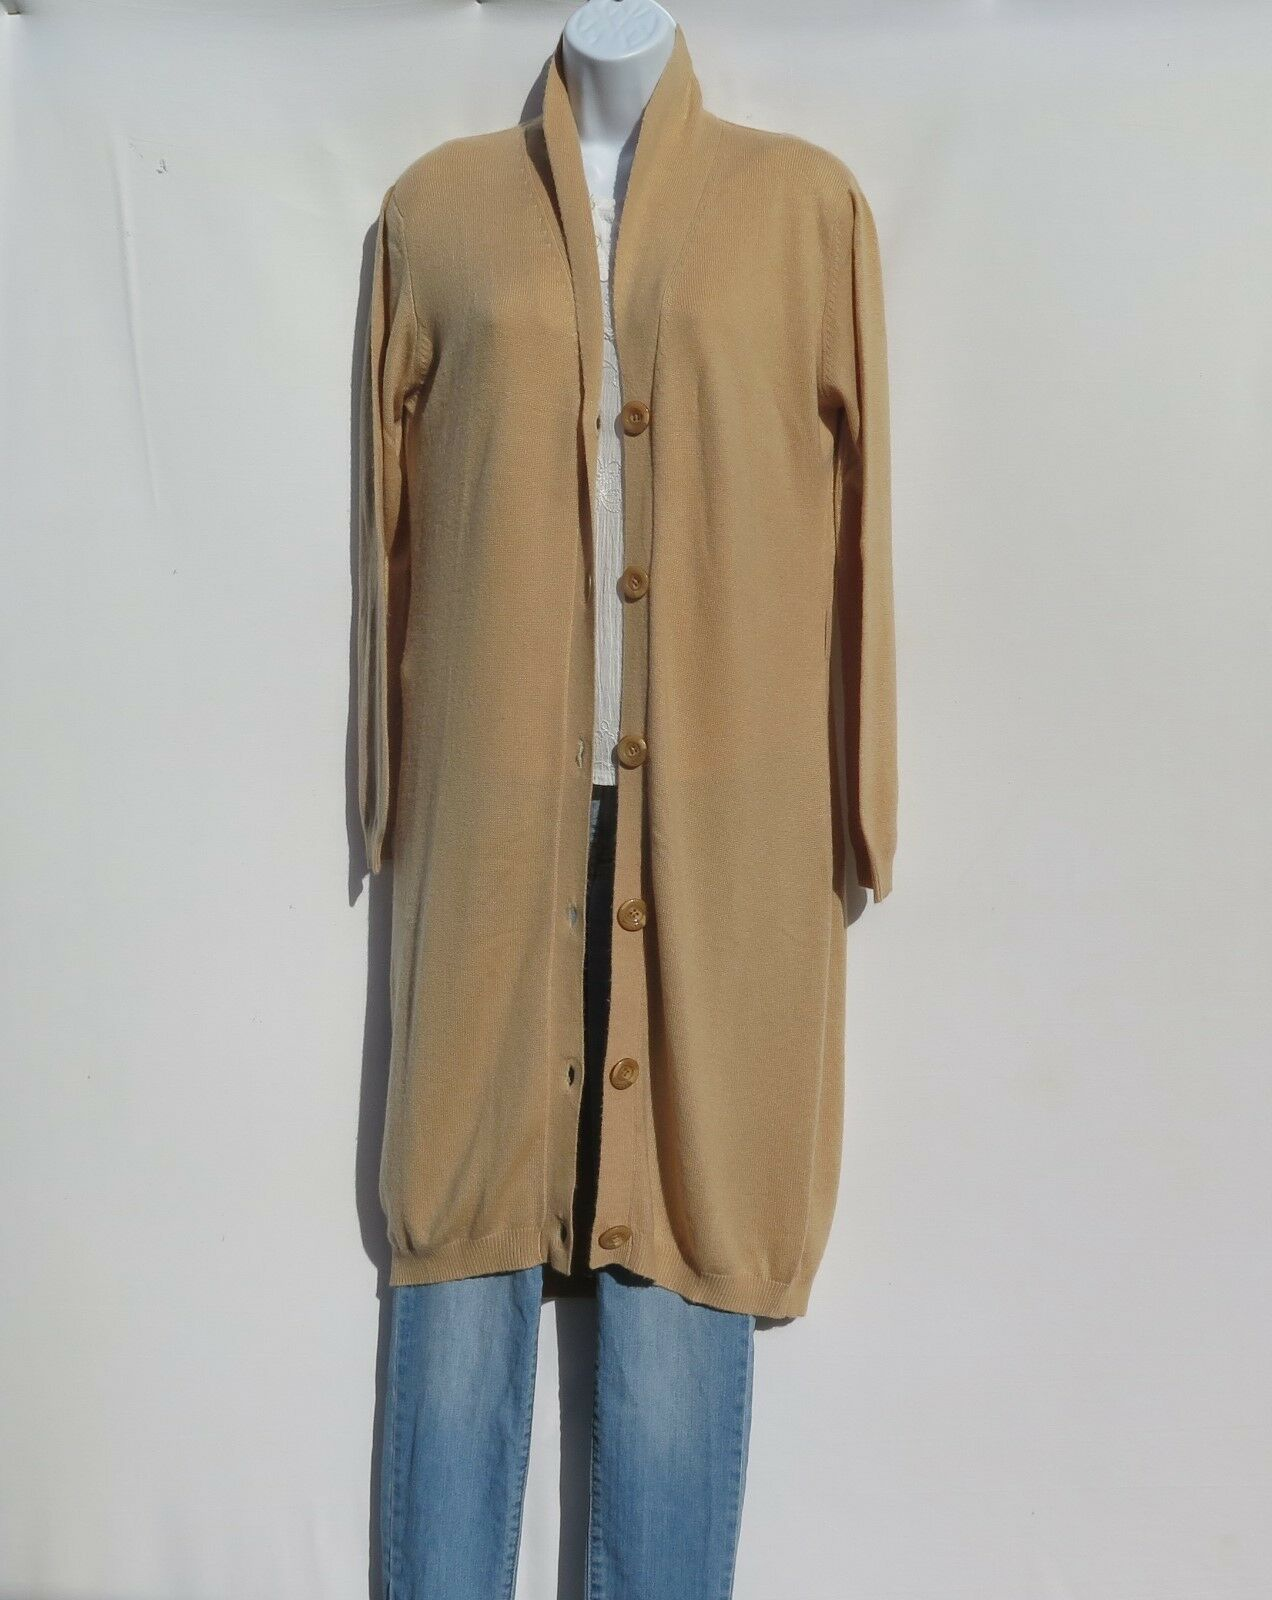 100% Cashmere High A Quality Tibetan Knit Extra Long Button Cardigan S-M Camel